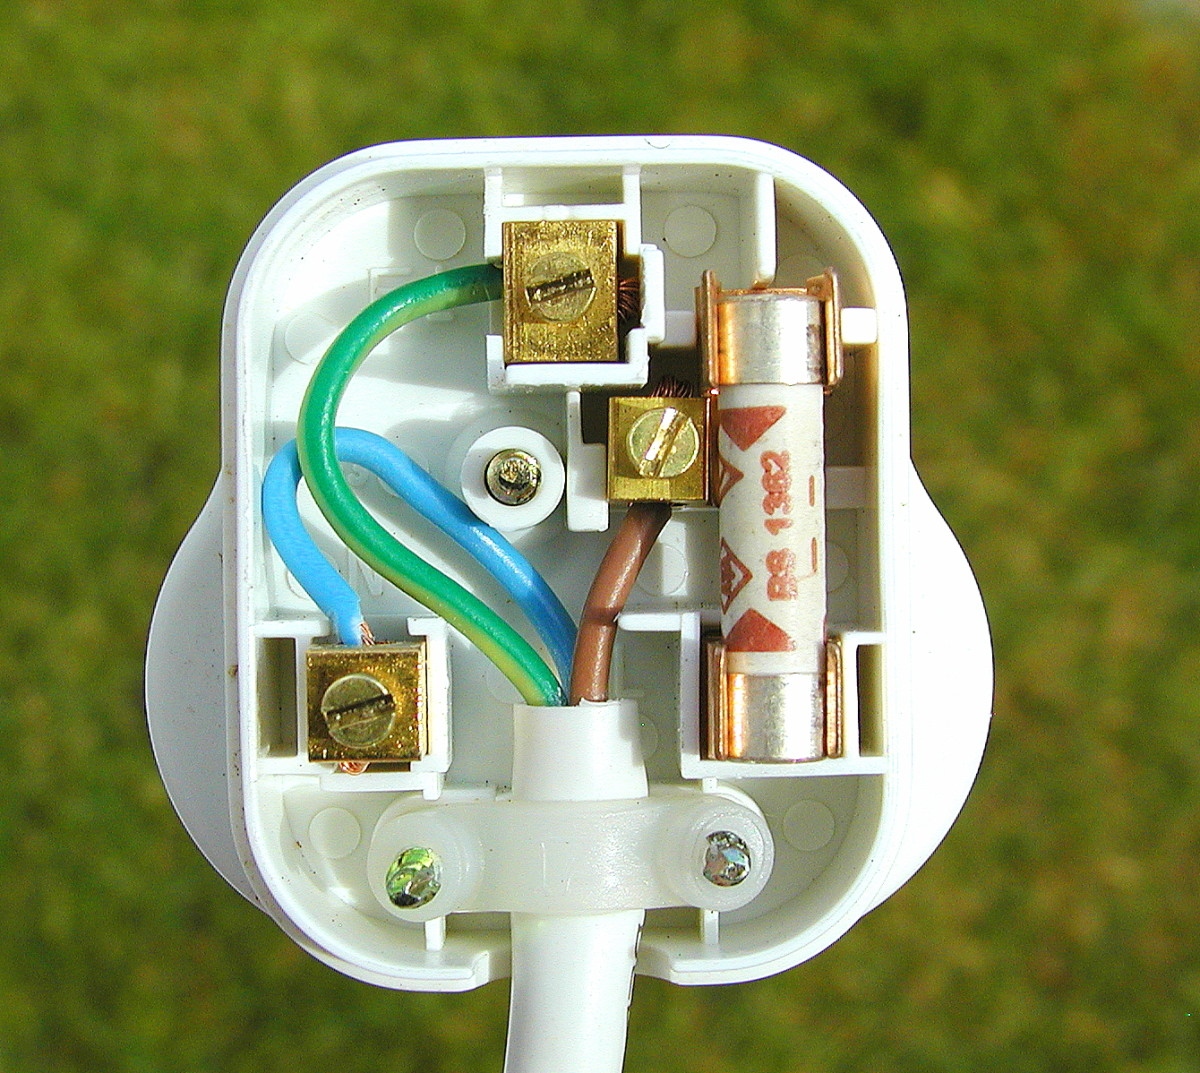 3 phase 5 pin plug wiring diagram uk boat ignition switch 9 easy steps to a correctly and safely dengarden how wire this is style bs1363 with integral